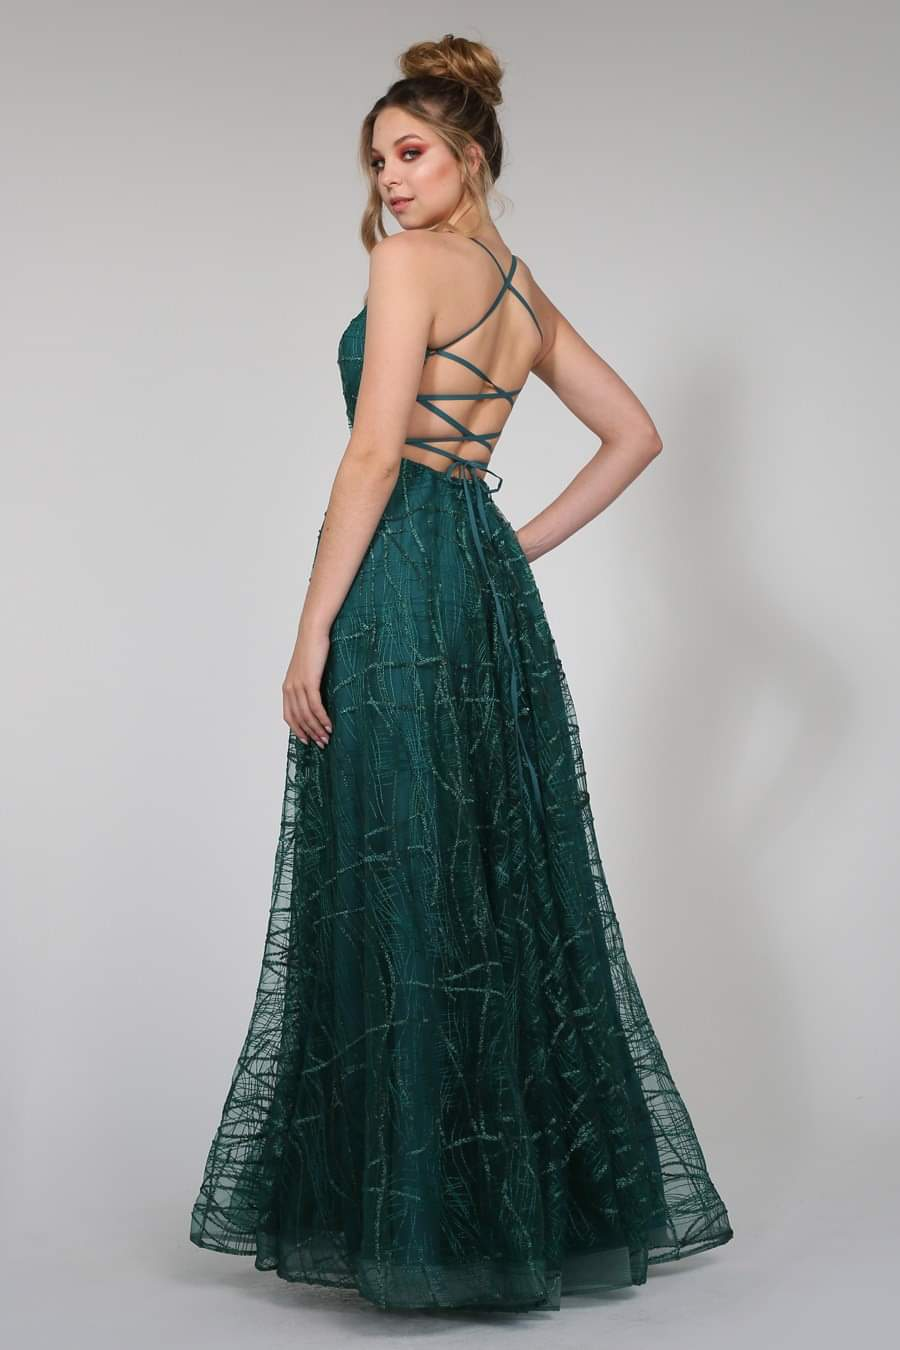 Tinaholy - TW002 Emerald green gown